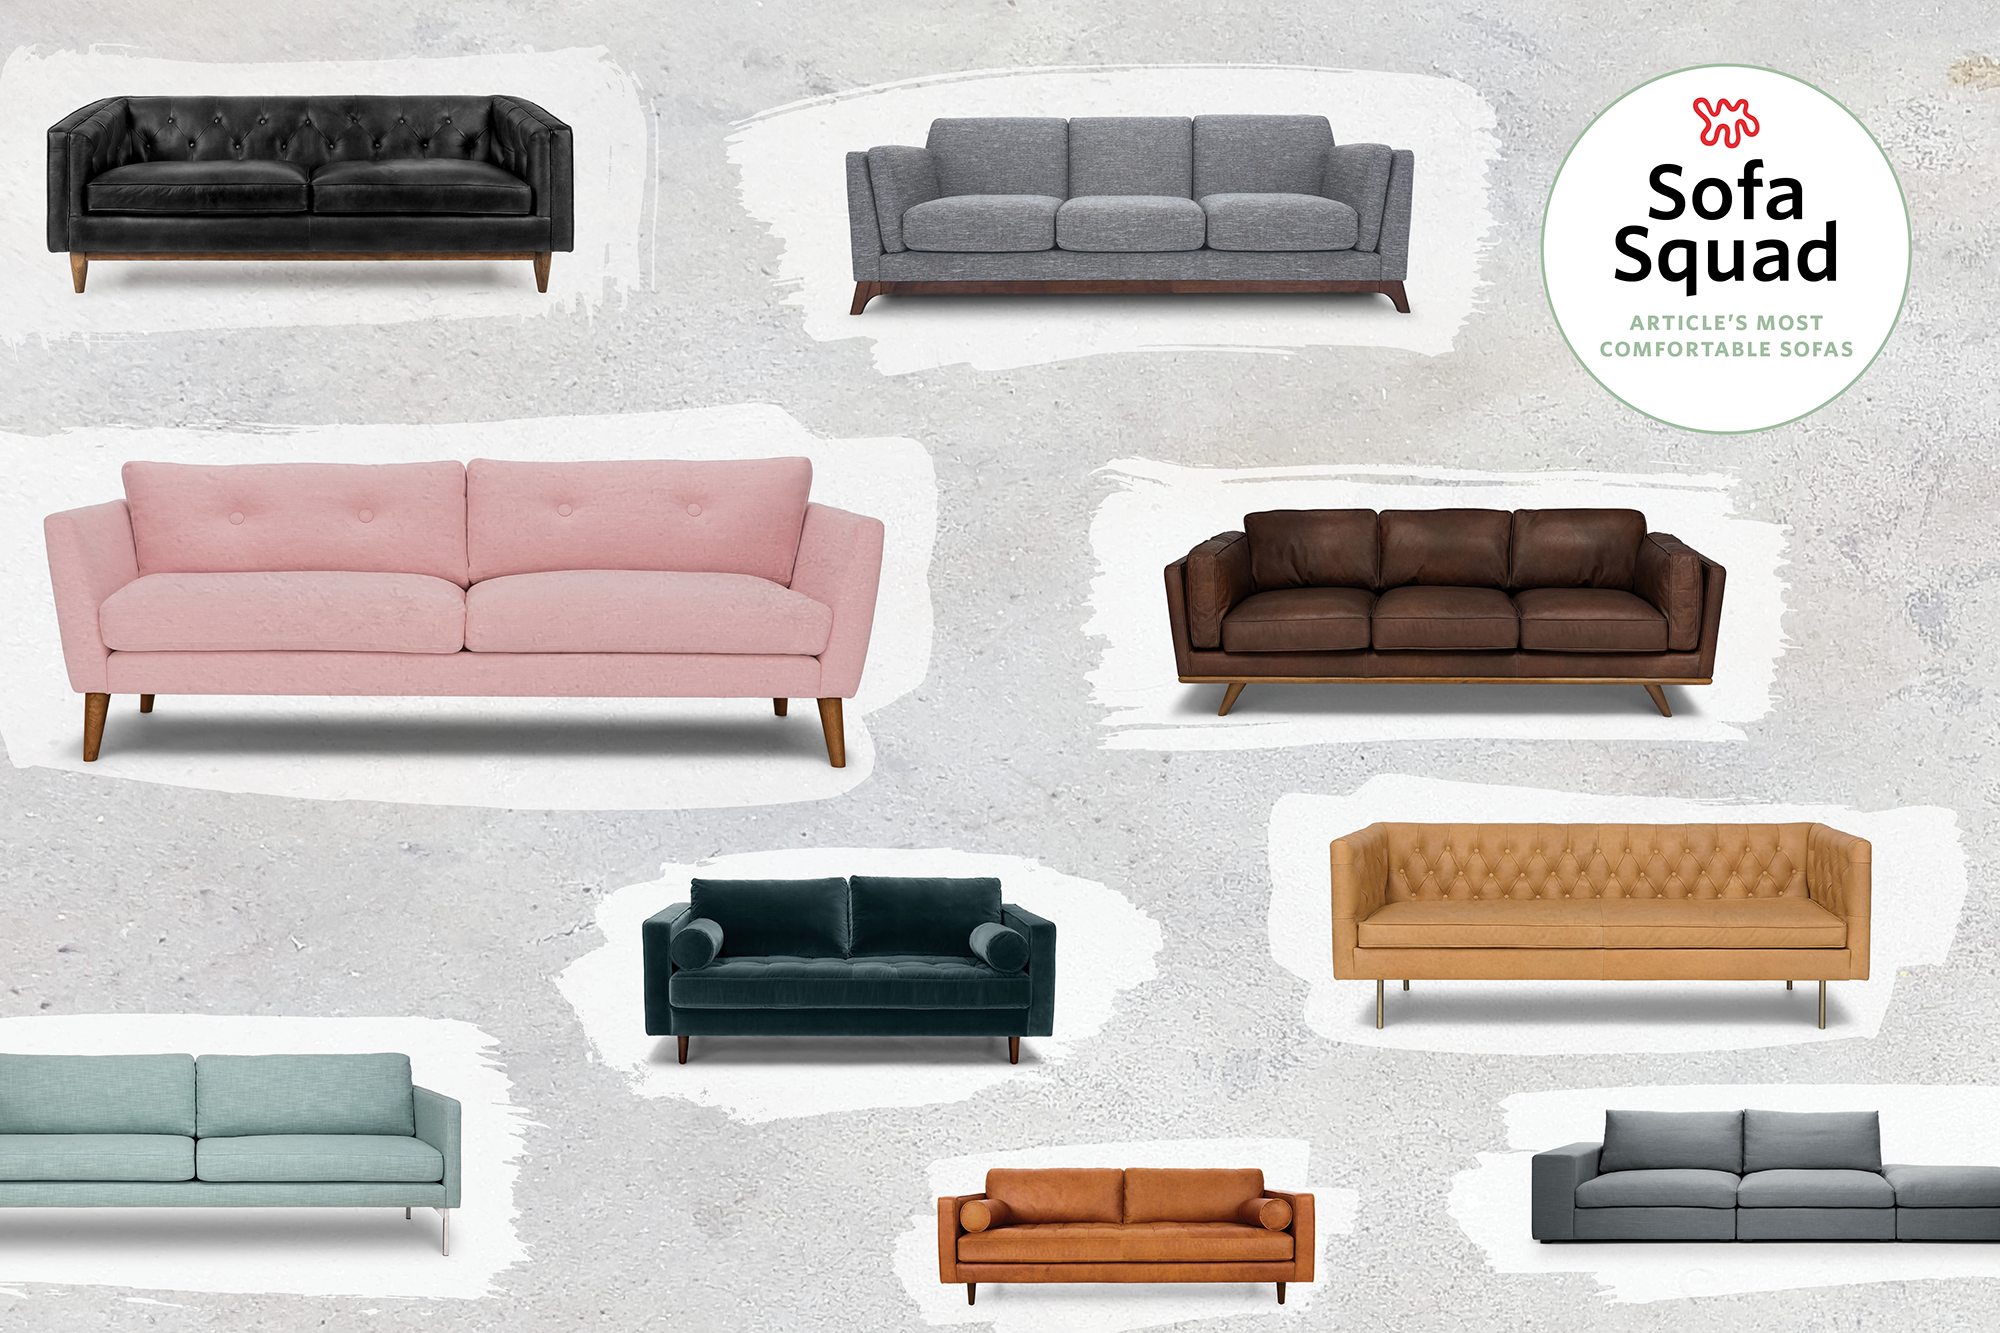 Awesome We Saw We Sat We Reviewed The Most Comfortable Sofas At Bralicious Painted Fabric Chair Ideas Braliciousco